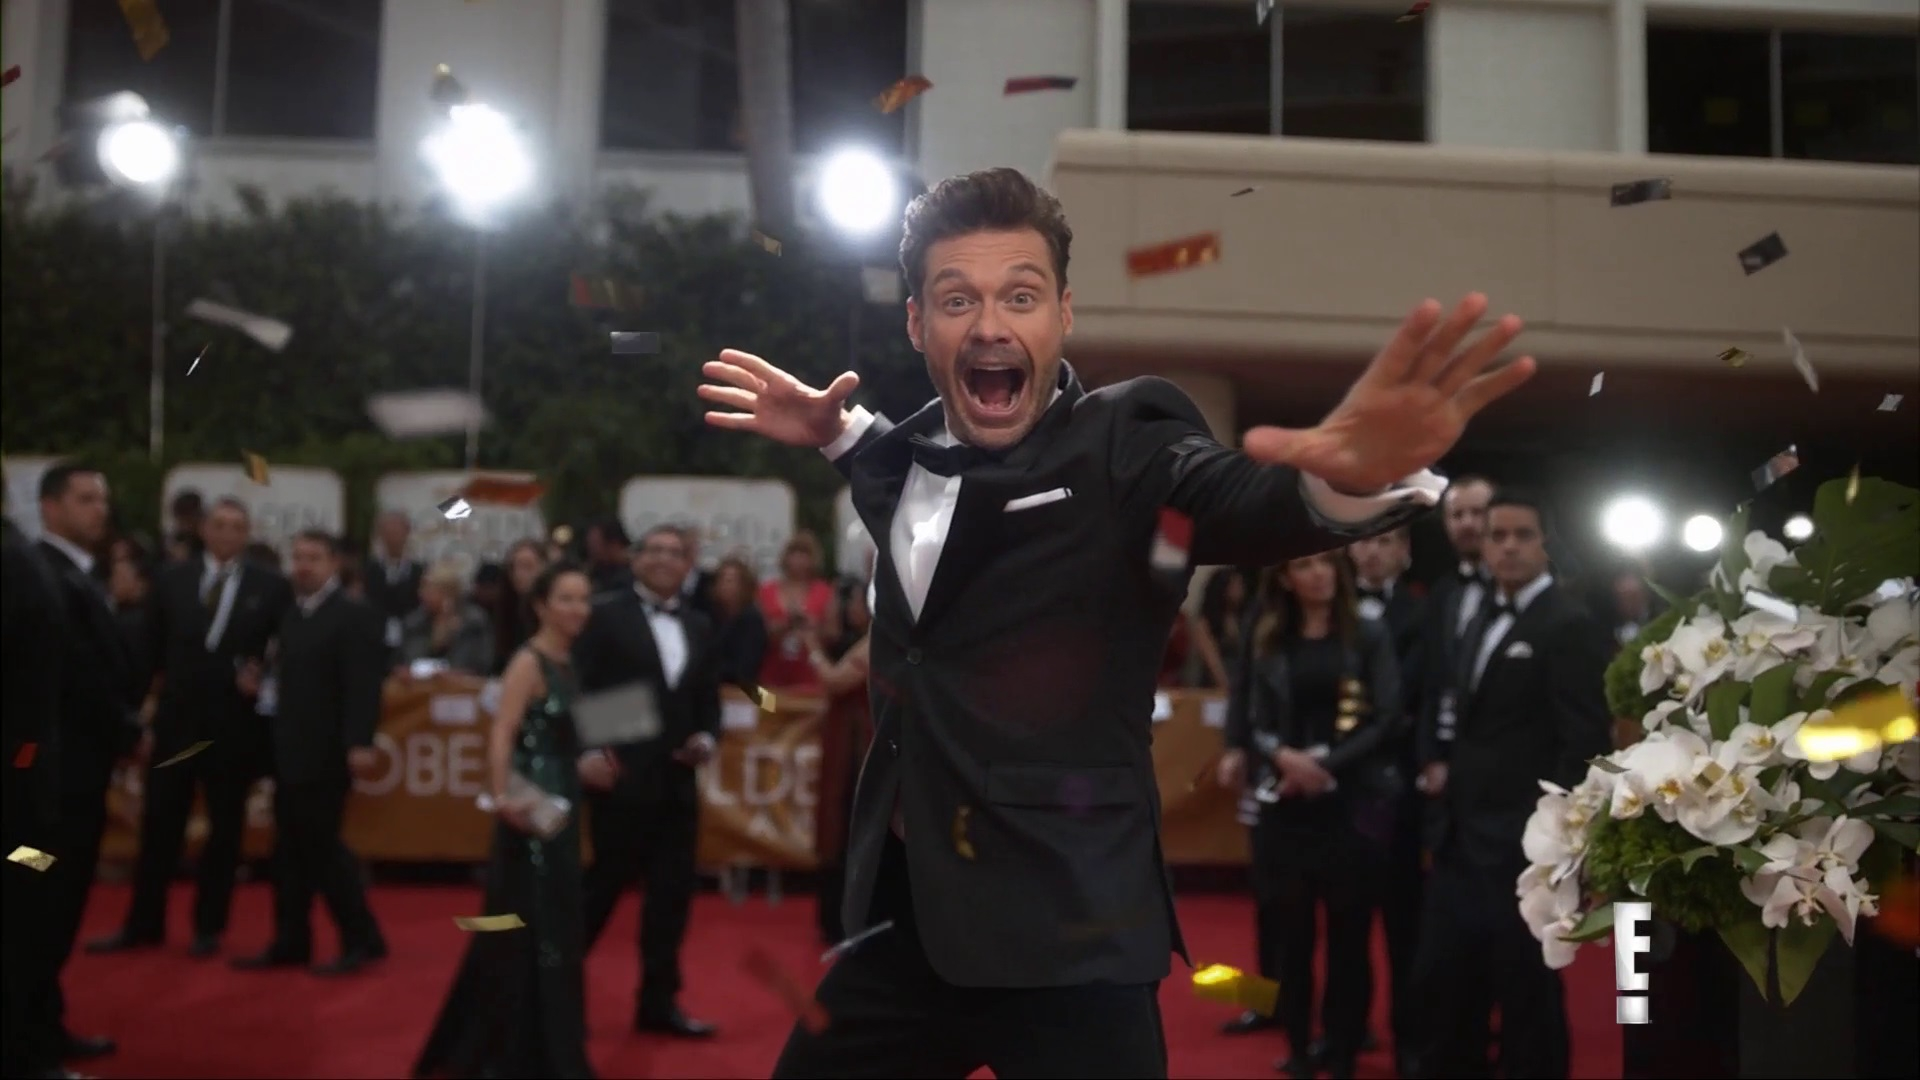 Ryan Seacrest Celebrates 10 Years on E!'S Red Carpet